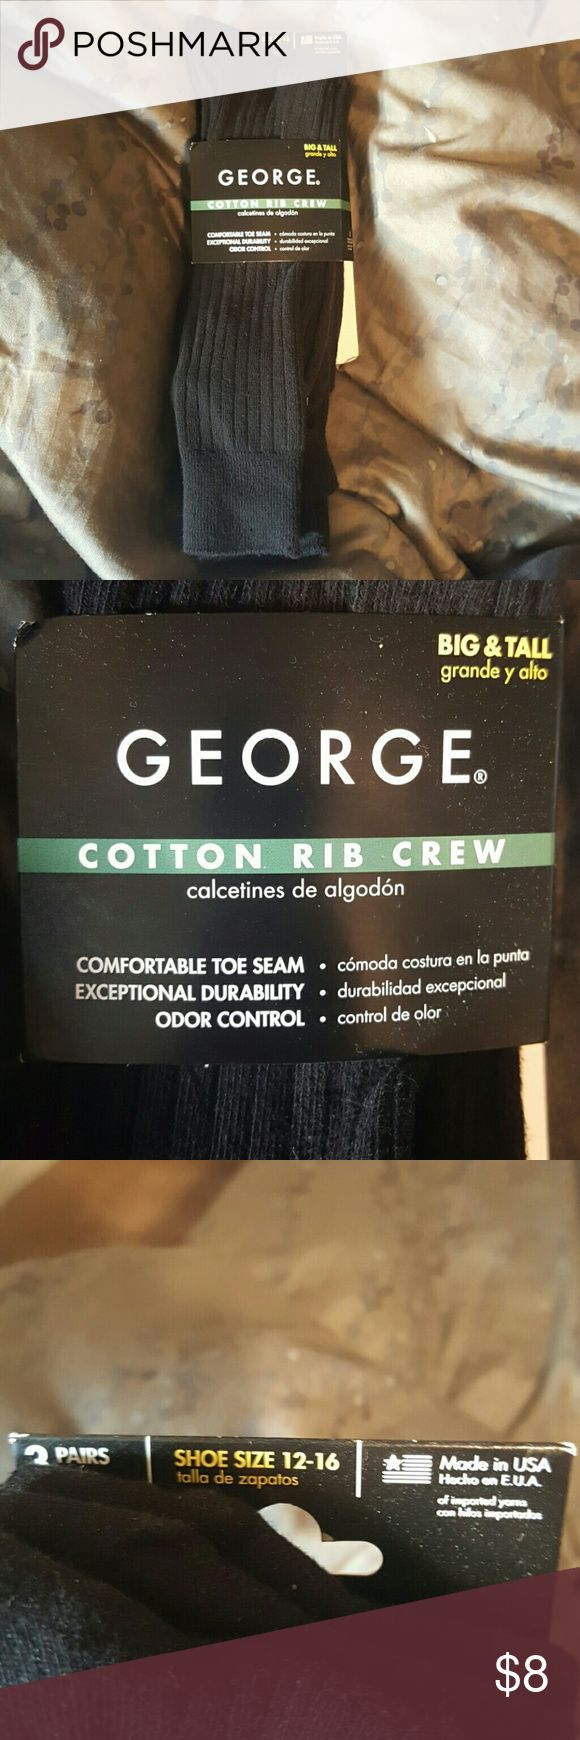 Dress Socks size 12-16 George cotton rib crew socks big and tall size 12 to 16 George Underwear & Socks Dress Socks